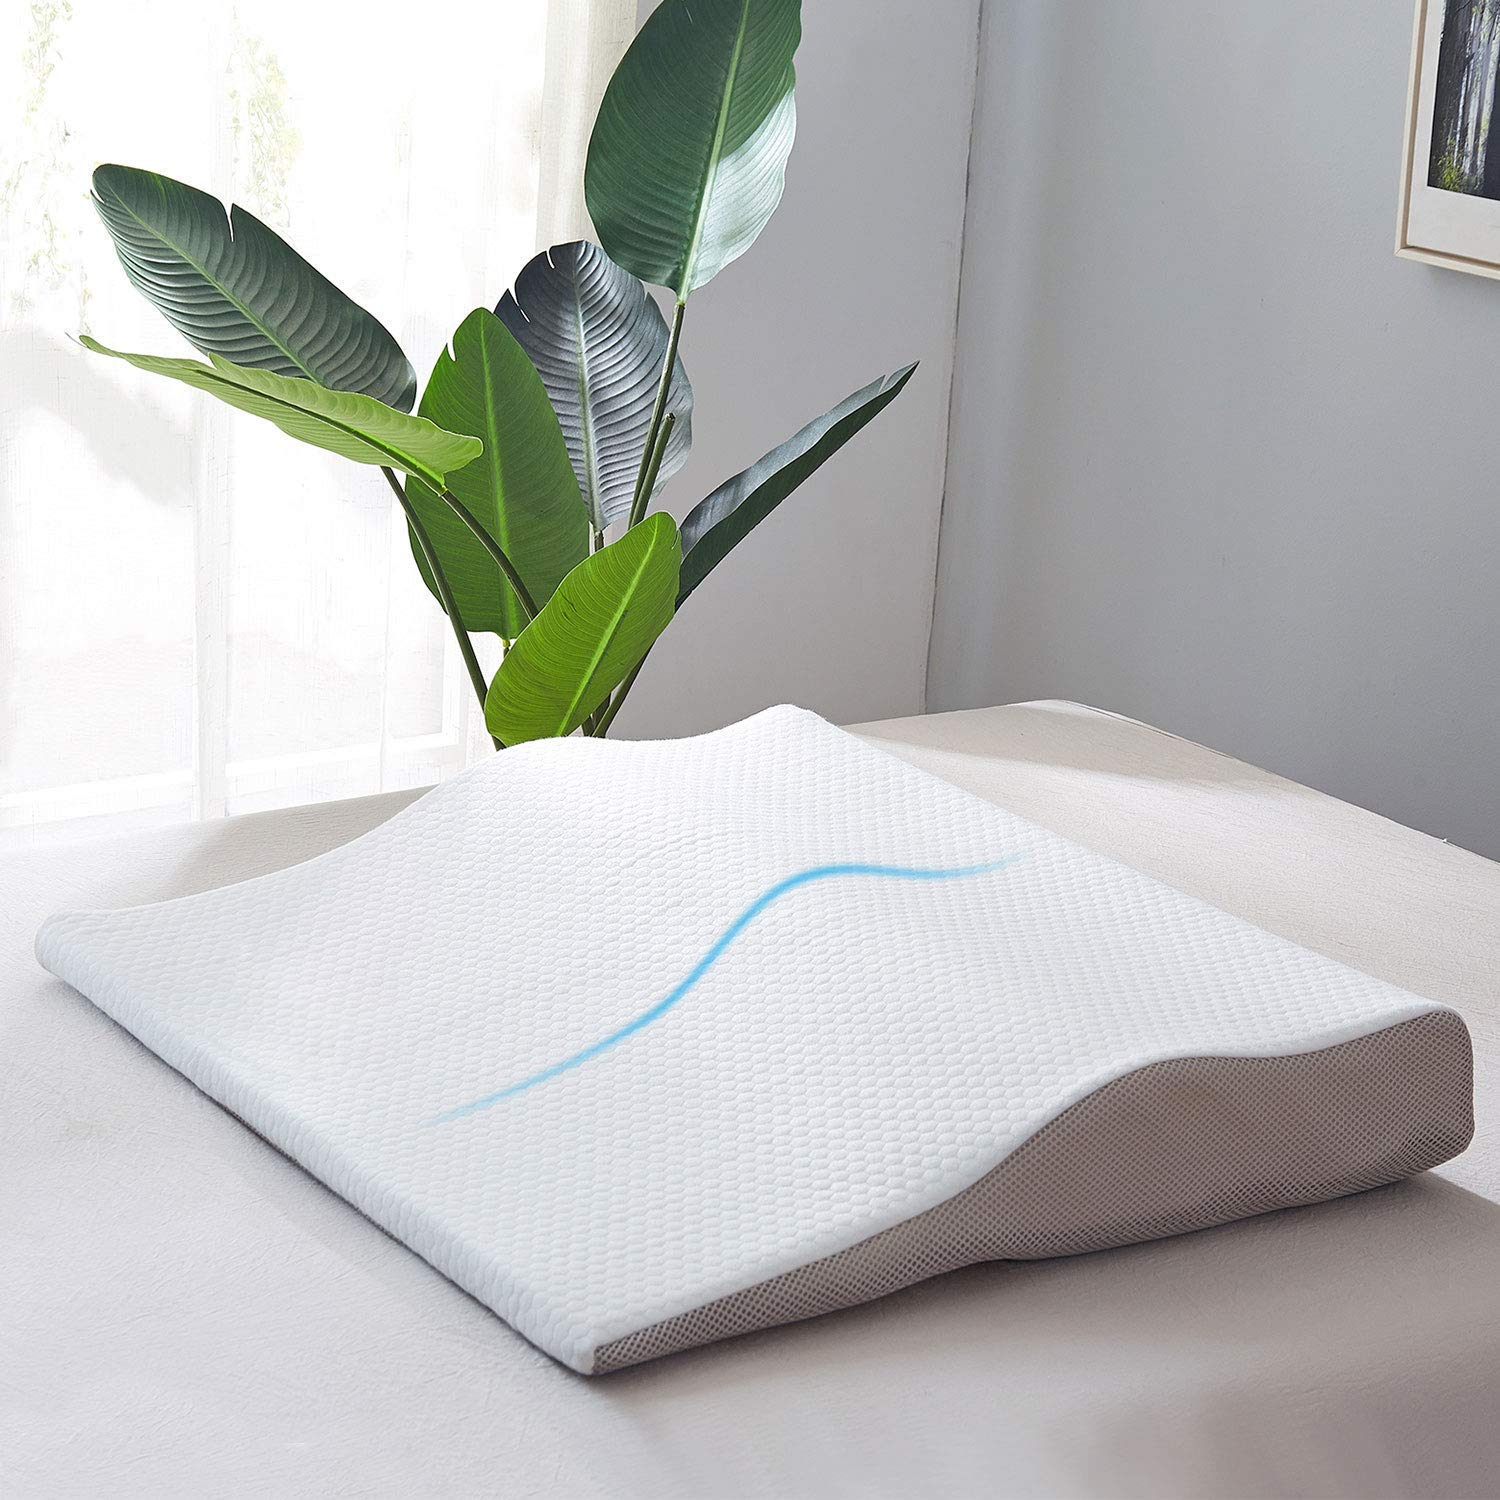 JOLLYVOGUE Bed Wedge Pillow for Acid Reflux-Adjustable Height Sleeping Wedge Memory Foam Pillow Therapeutic Pillow with Zippered Cover, Designed for Back & Neck Pain, Better Breathing & Circulation by JOLLYVOGUE